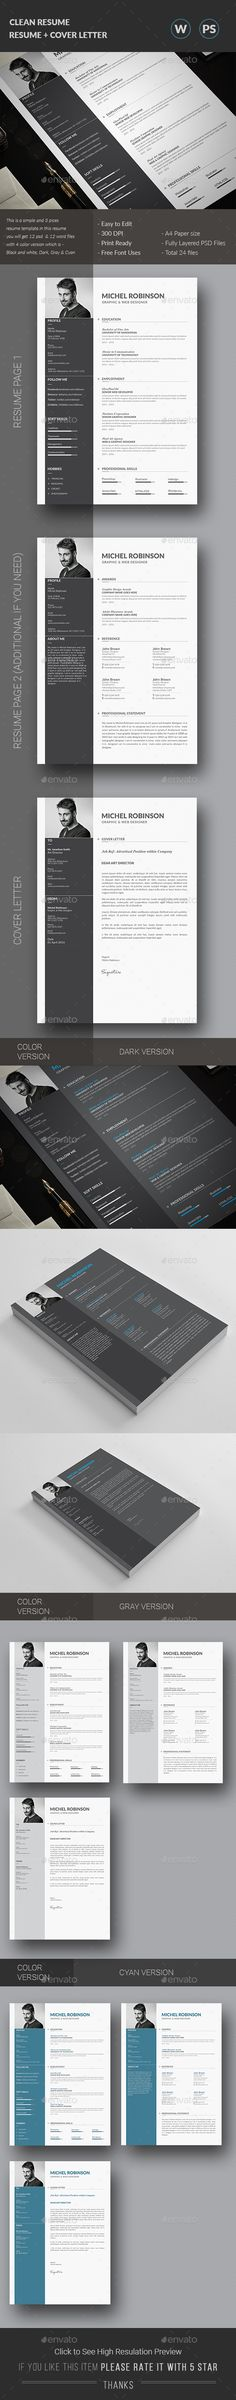 Resume Template PSD. Download here: http://graphicriver.net/item/resume/15607938?ref=ksioks